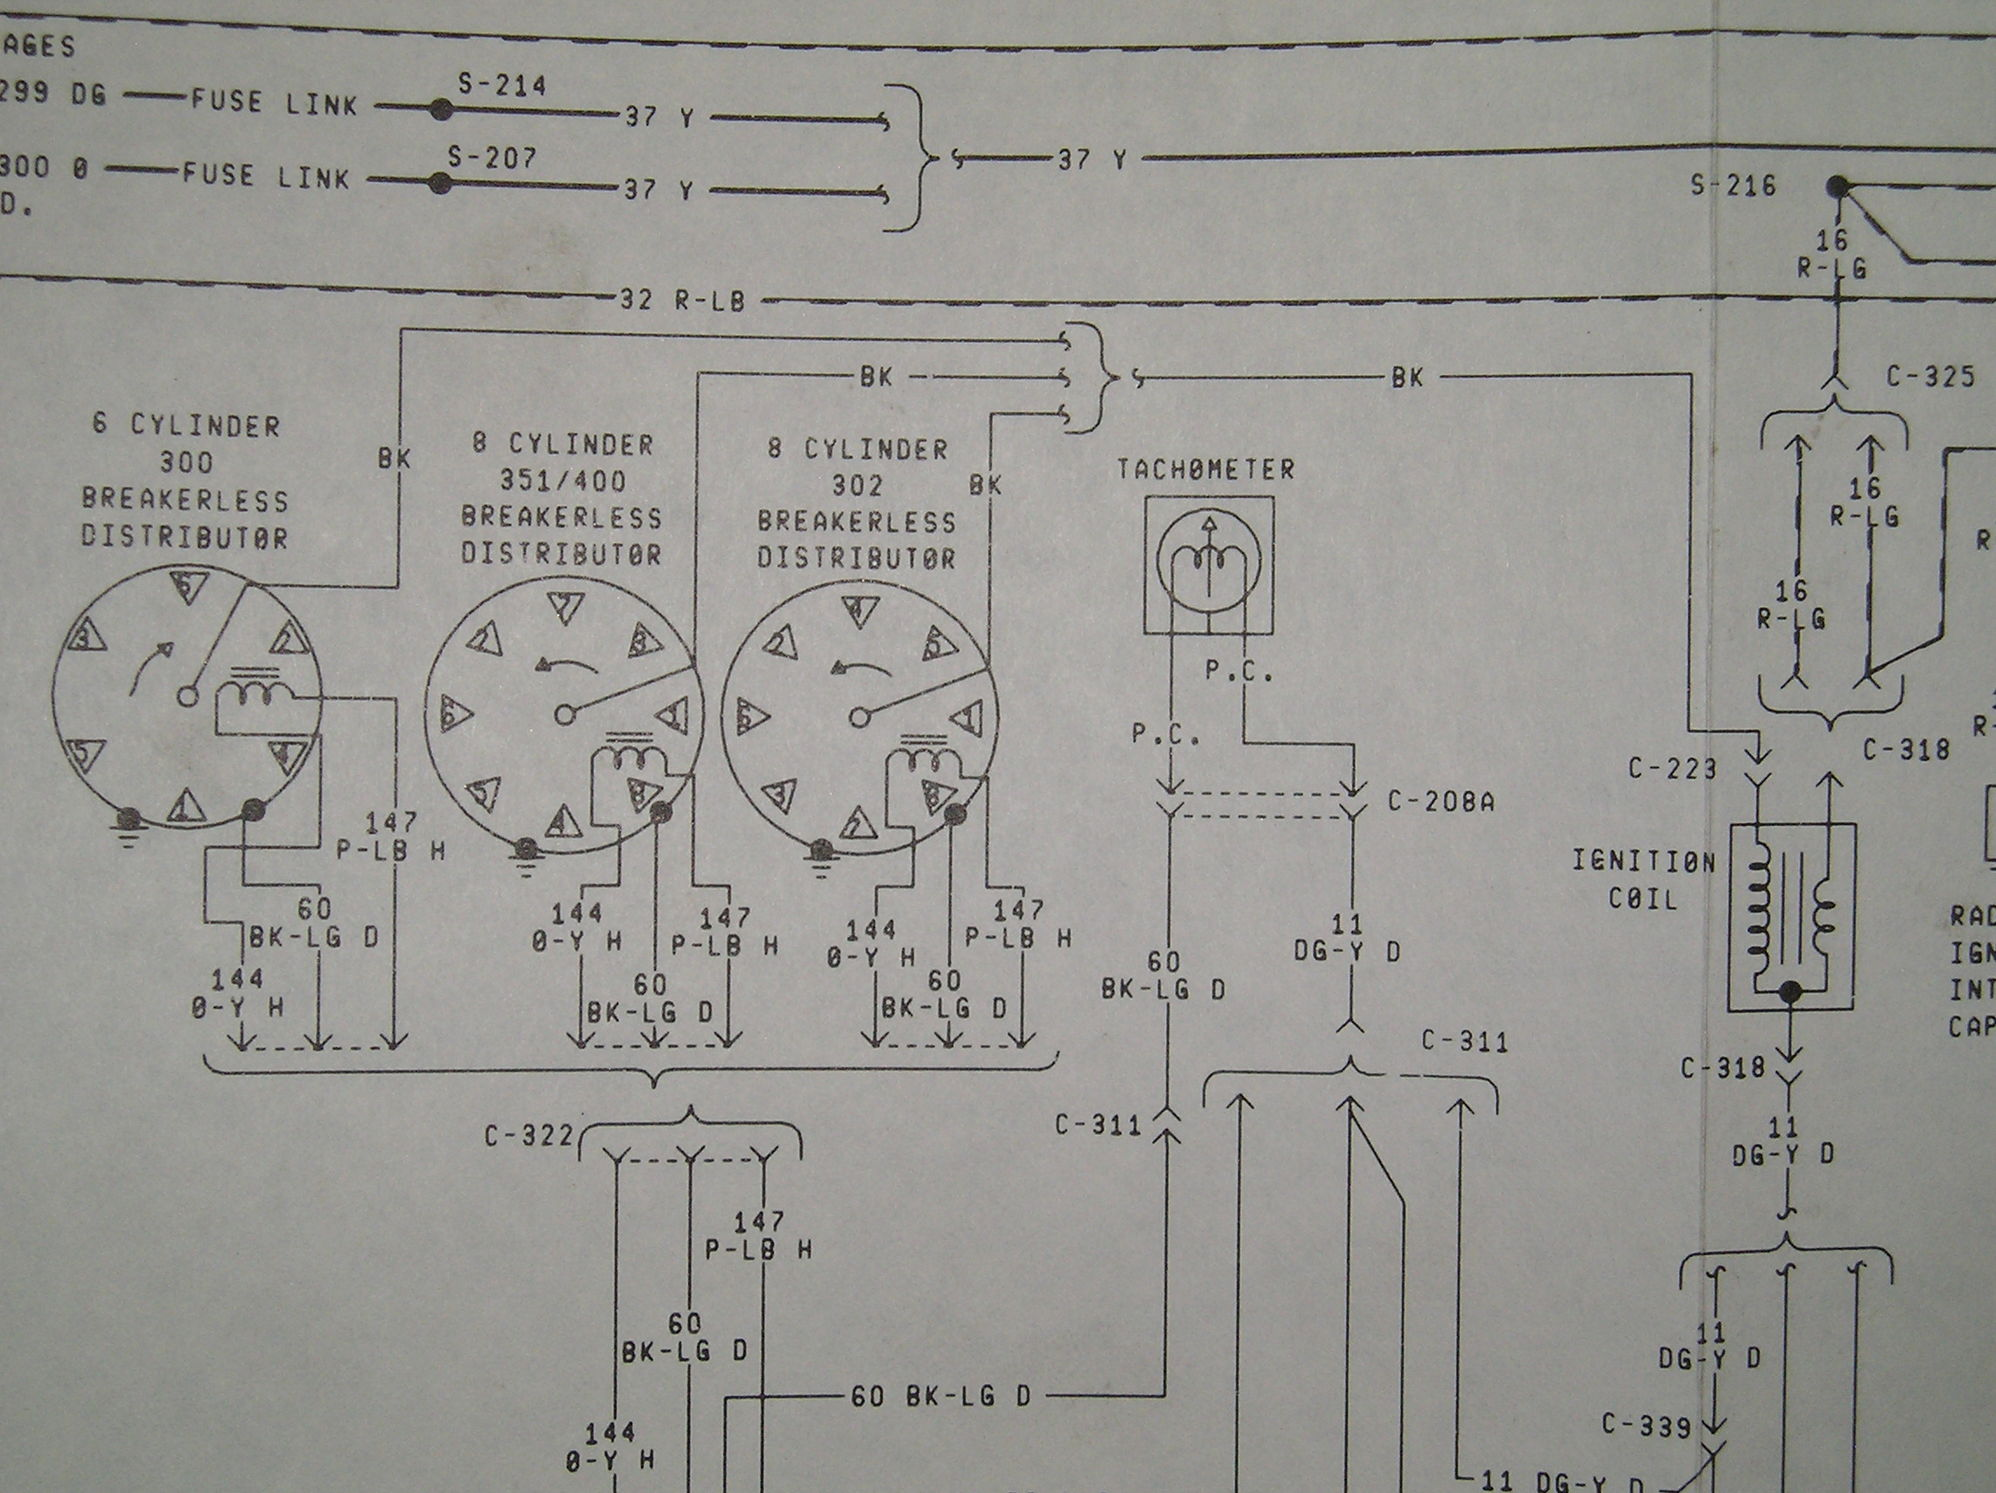 1982 f100 cluster connector wiring diagram ford truck any aftermarket diagrams that are worth a crap you could probably just match up the colors and be fine but getting the factory wiring diagrams